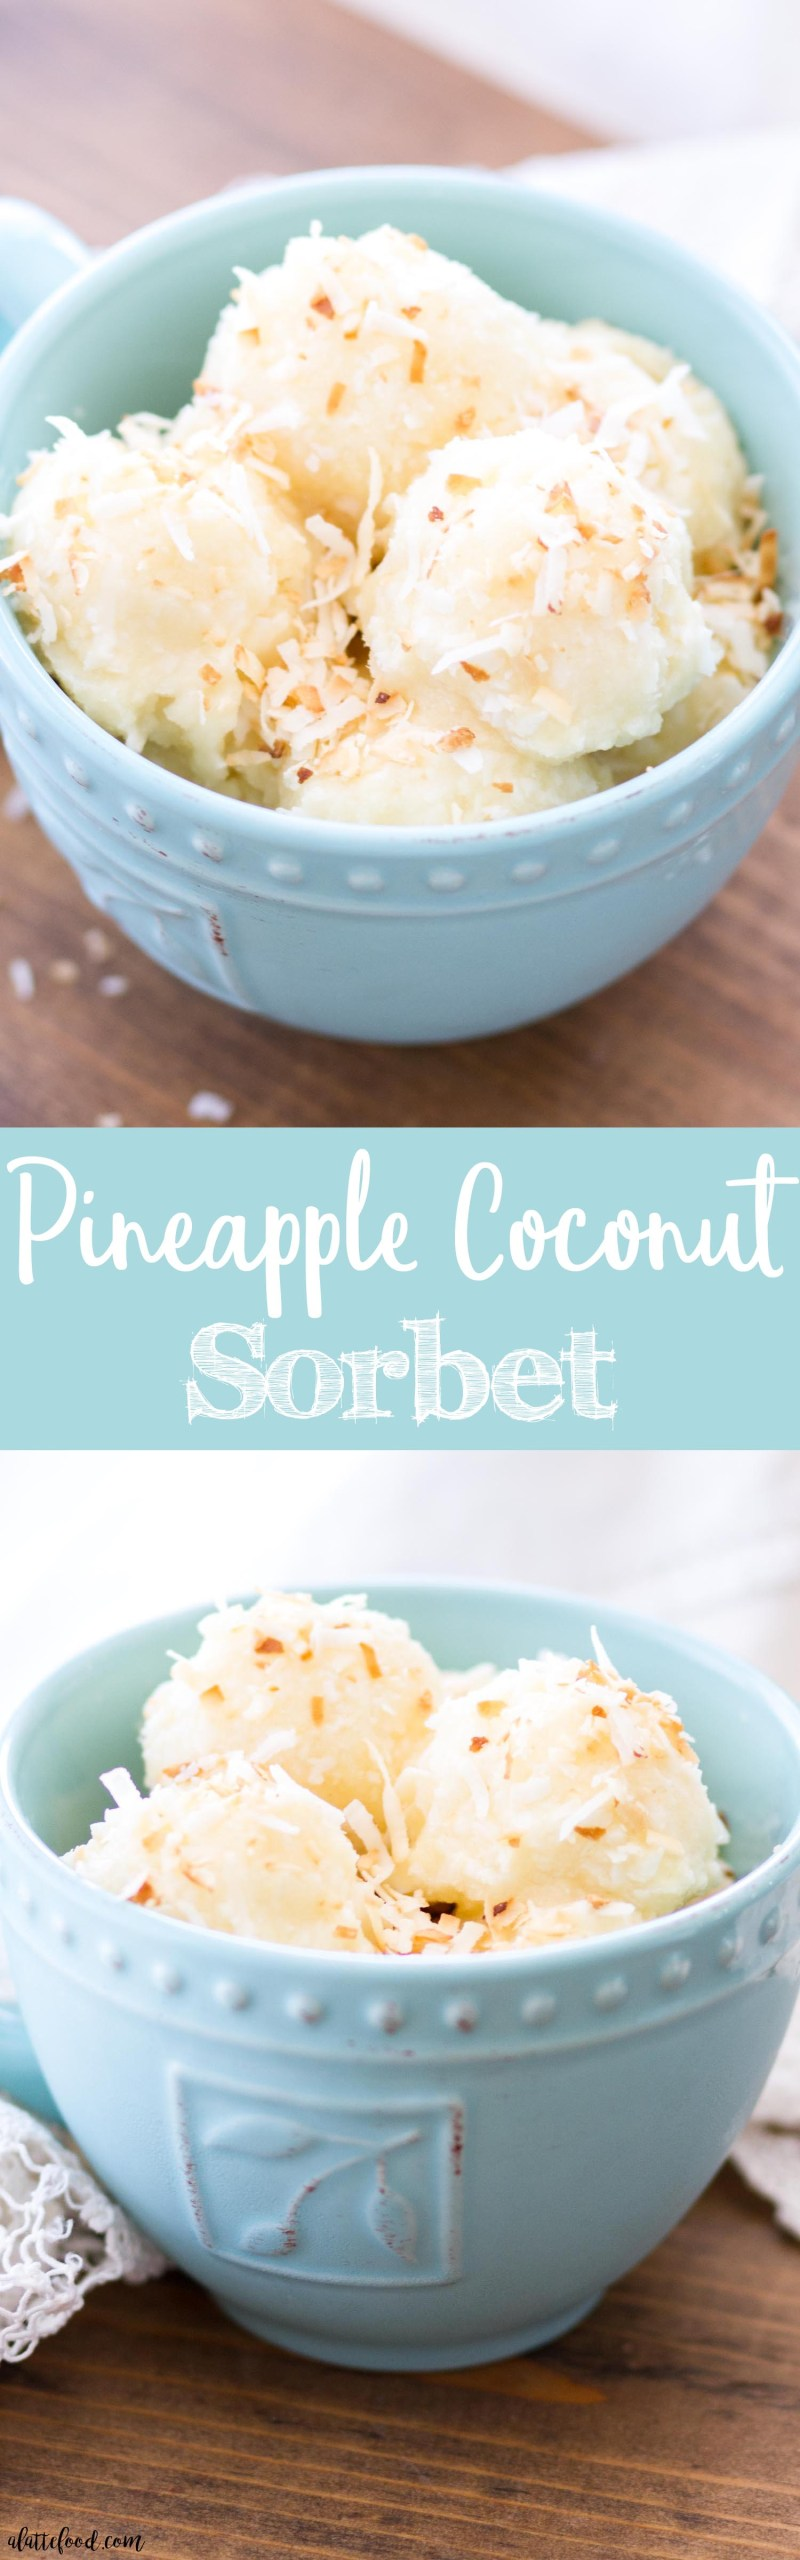 This homemade pineapple coconut sorbet is made with only 6-ingredients and is refined sugar-free and dairy-free! This easy frozen dessert is easy to make, full of flavor, and totally dreamy! how to make sorbet, homemade sorbet recipe